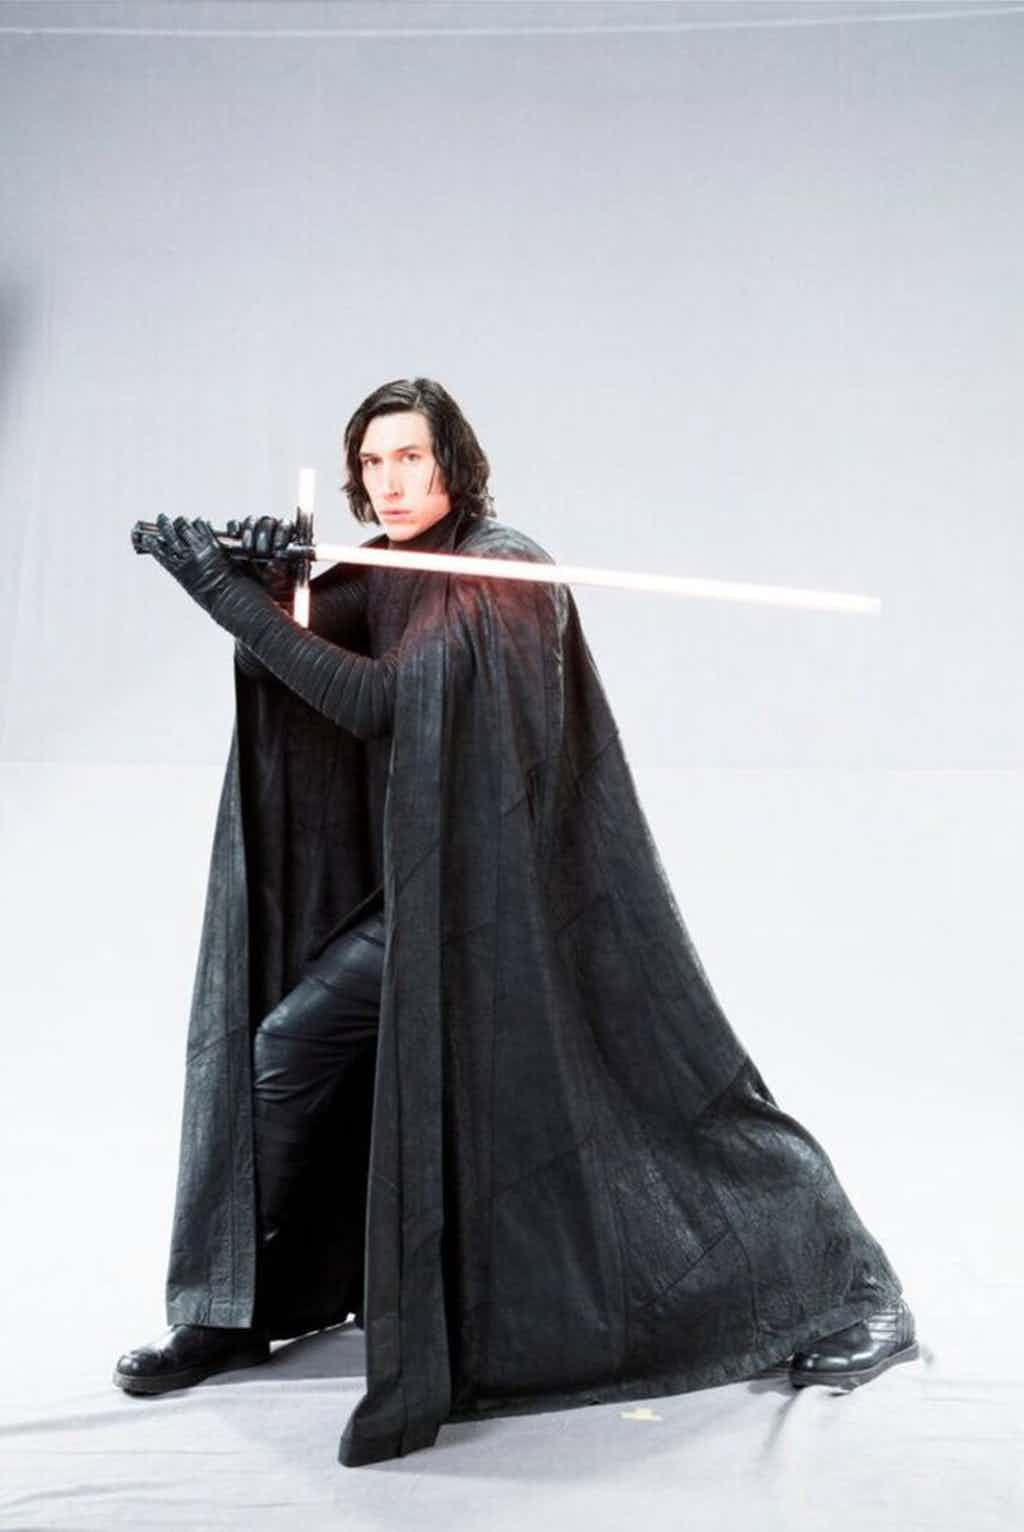 Star-Wars-The-Last-Jedi-Adam-Driver-as-Kylo-Ren-Posing-With-Prop-Lightsaber.jpg